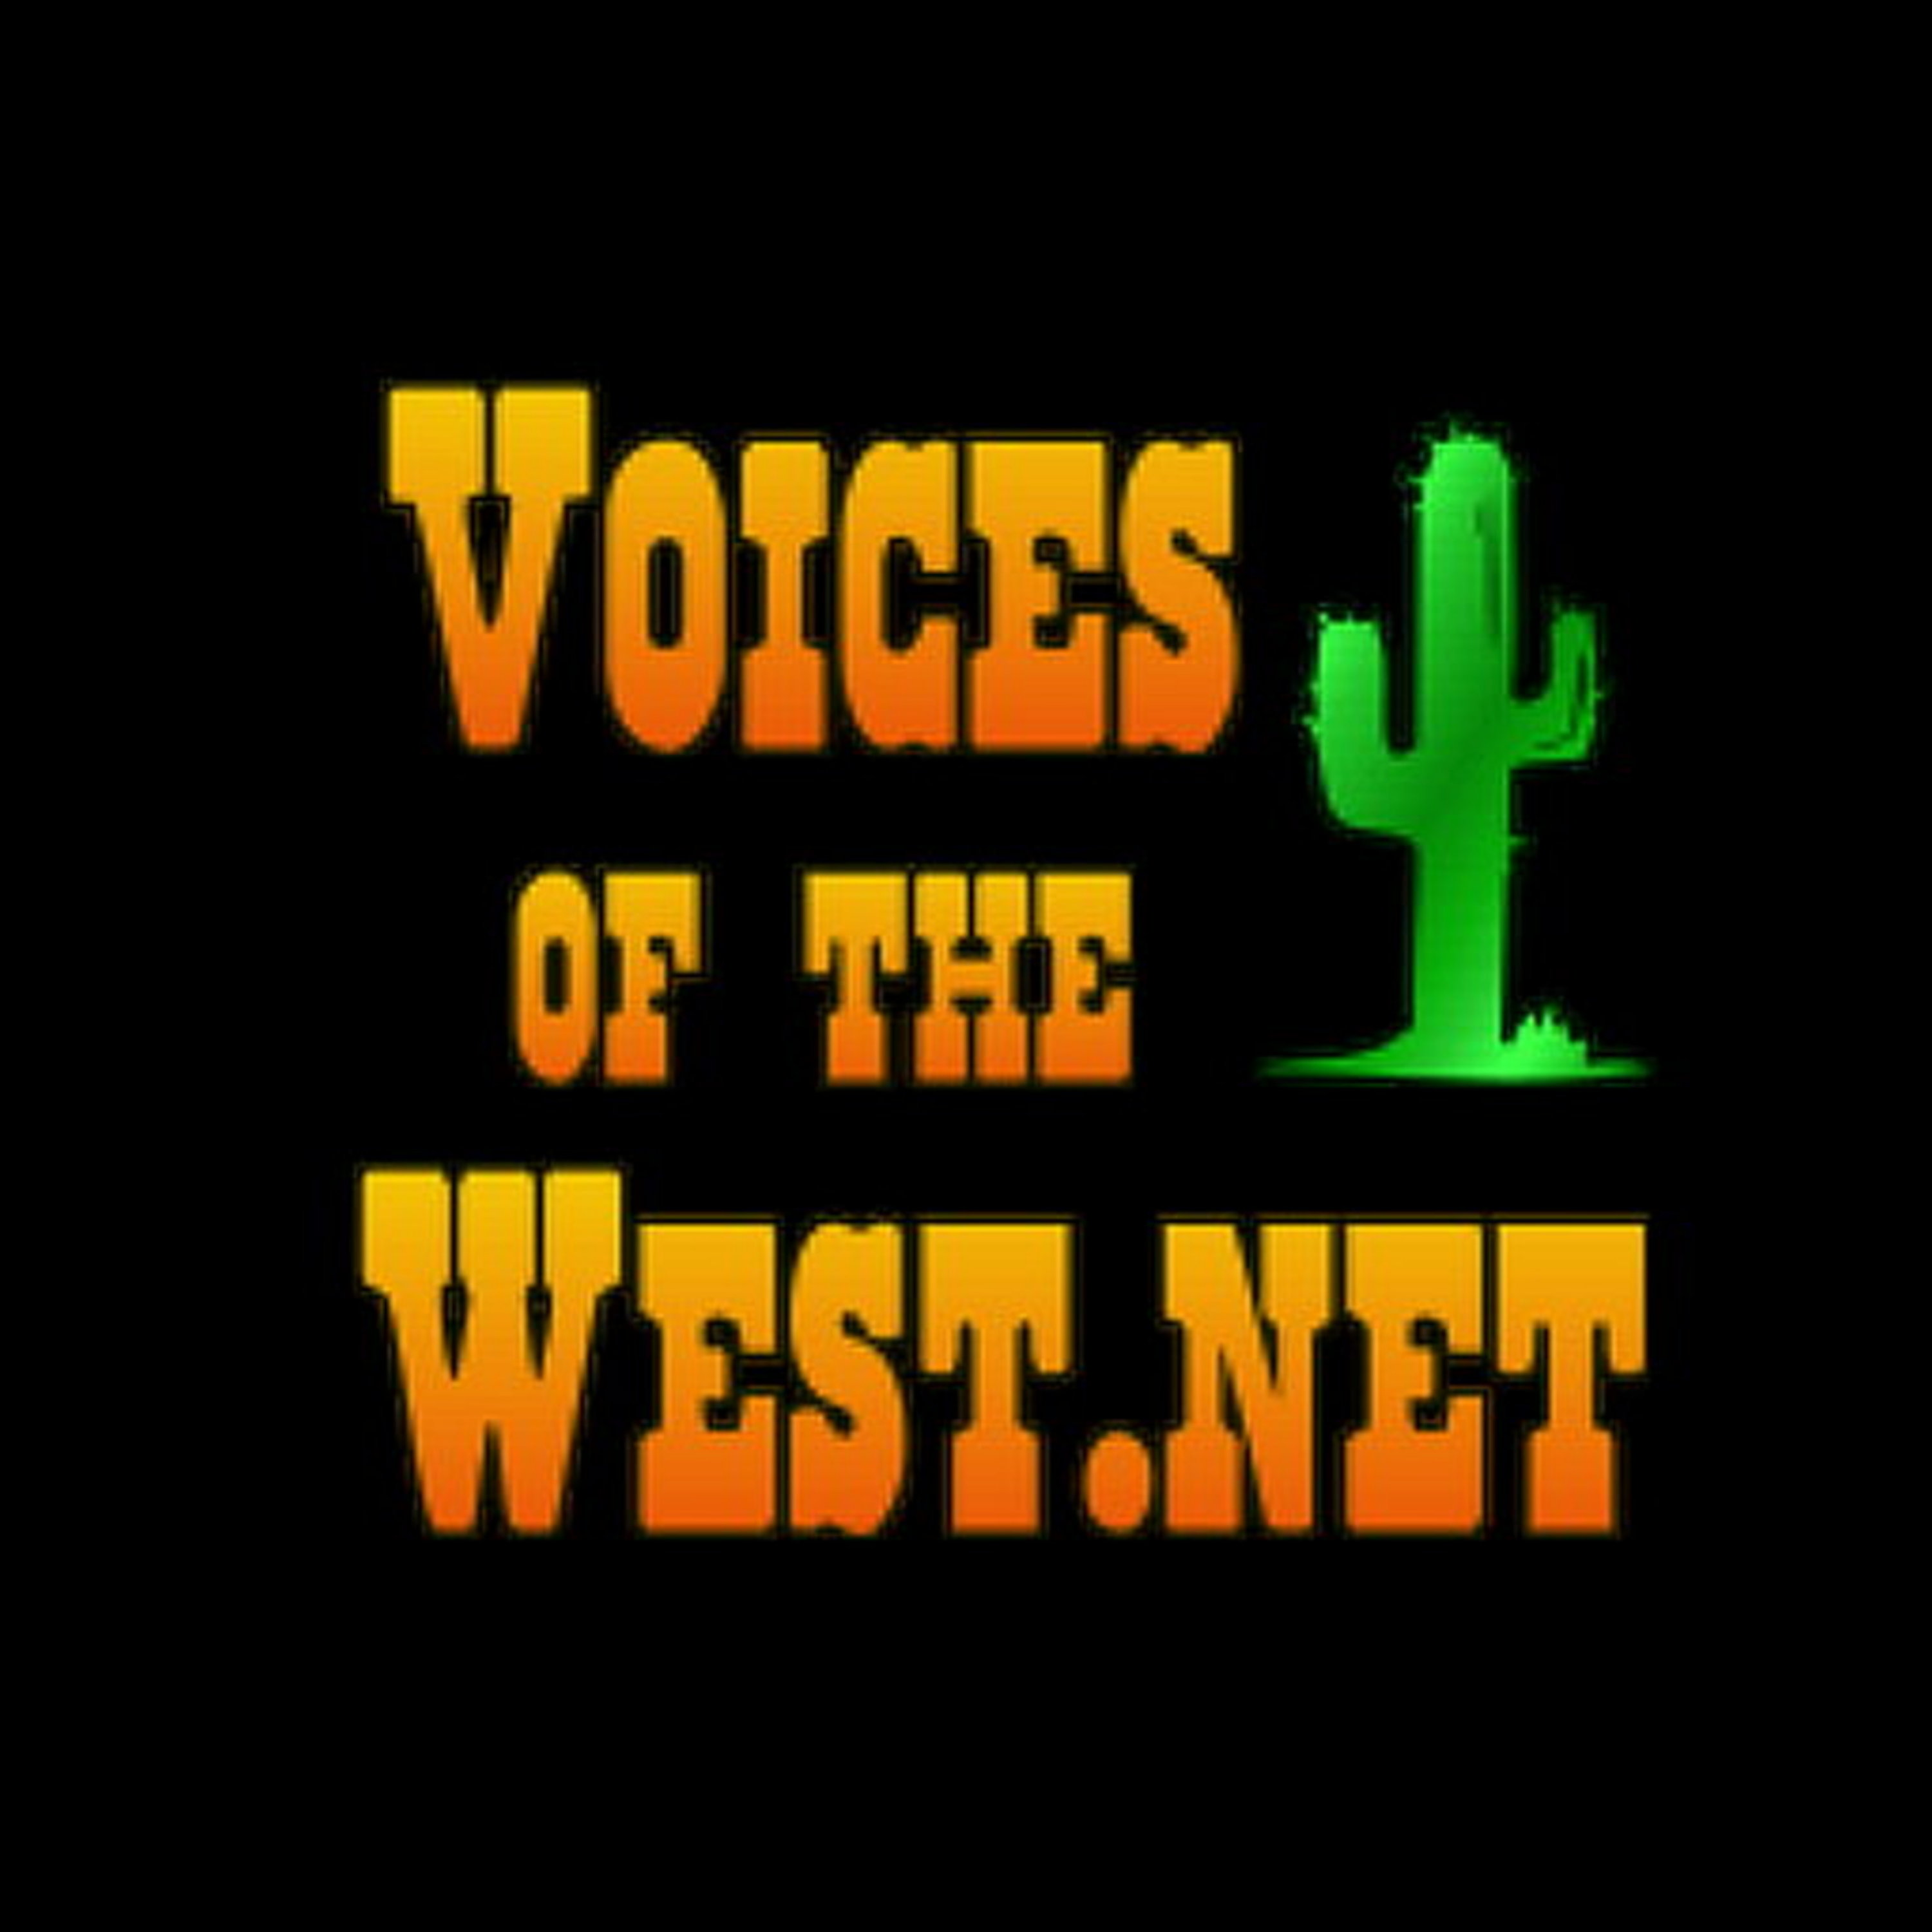 Voices of the West